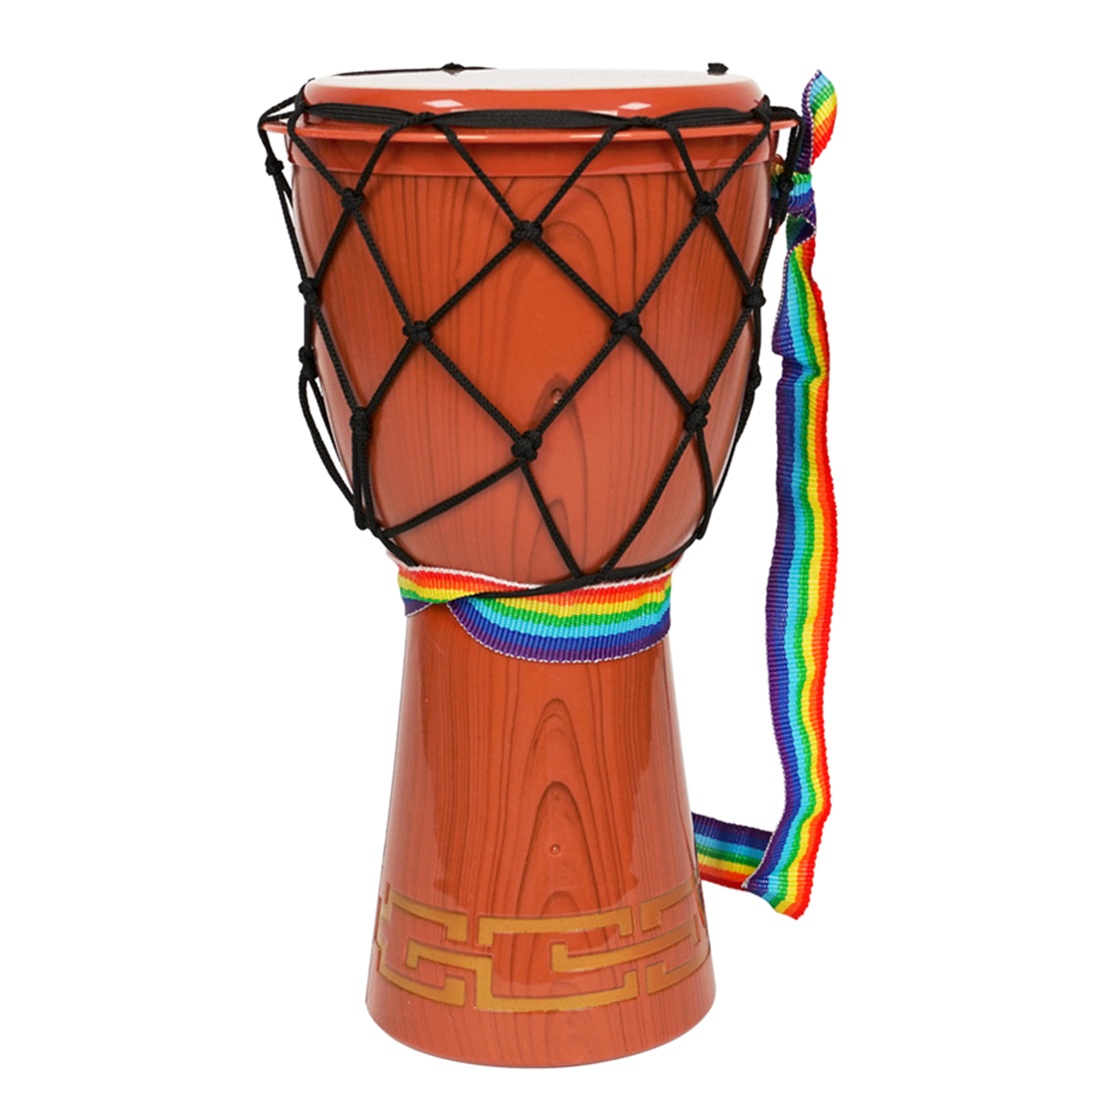 12 Inches Djembe Simulation Hand Drum Early Educational Musical Instruments Toy - Brown